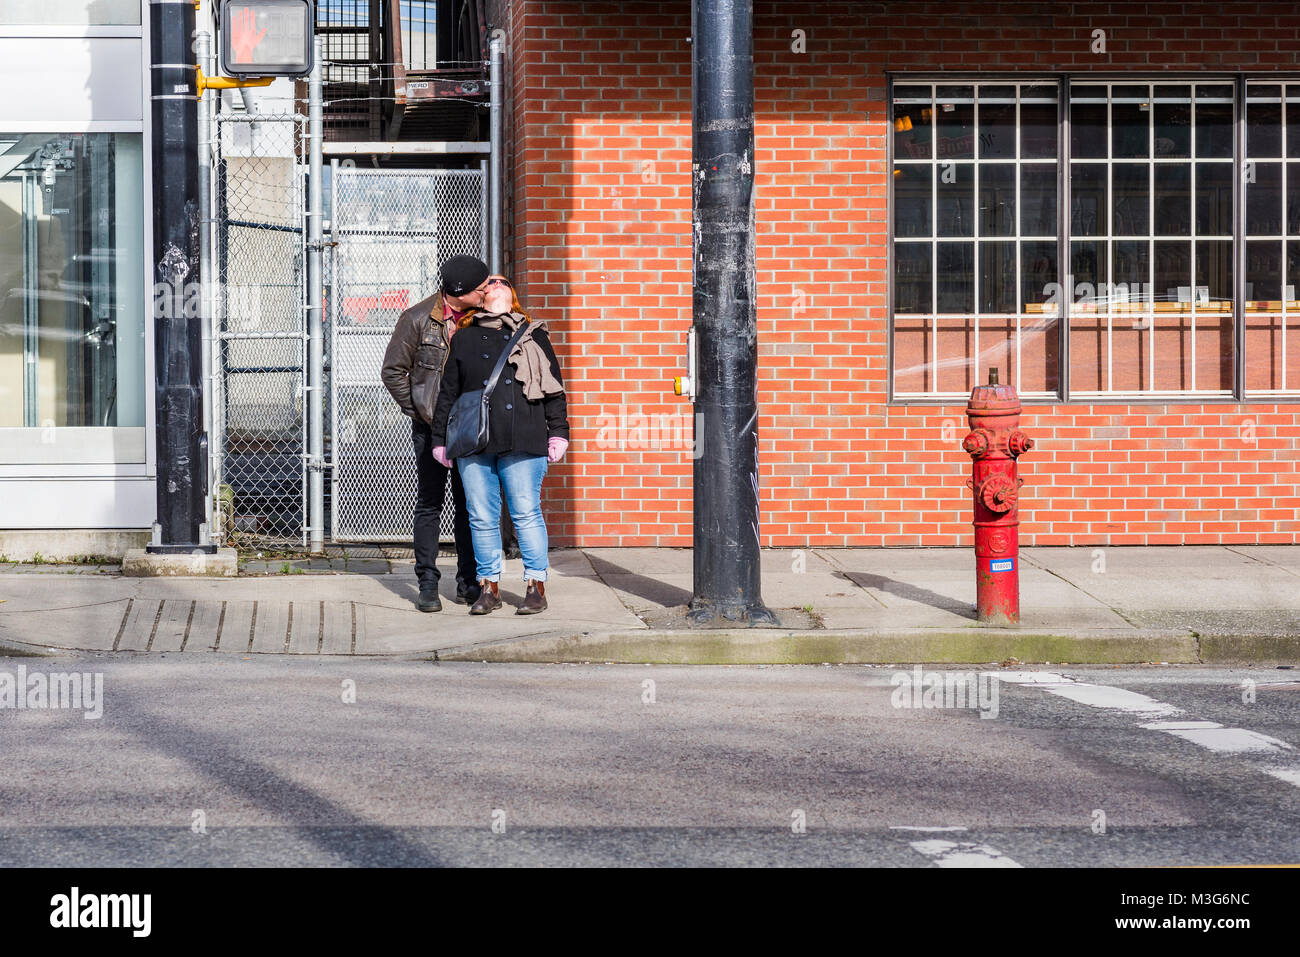 PDA. a public display of affection. A kiss while waiting for the light to change. - Stock Image